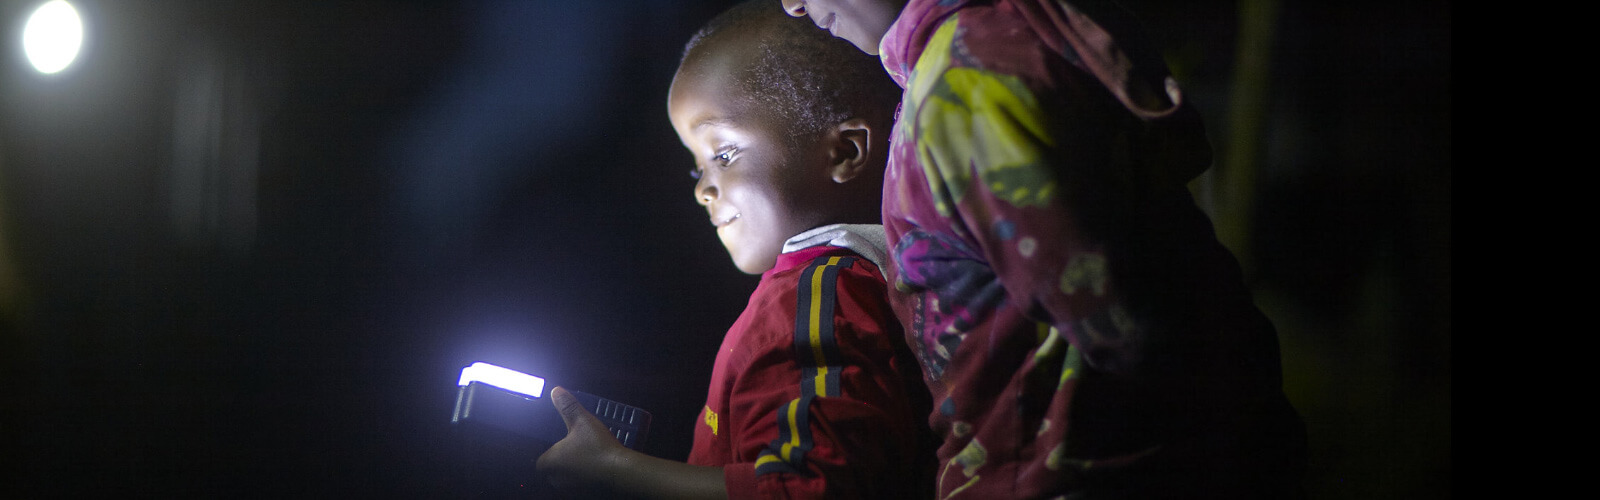 a child looking at a glowing handheld device in the dark